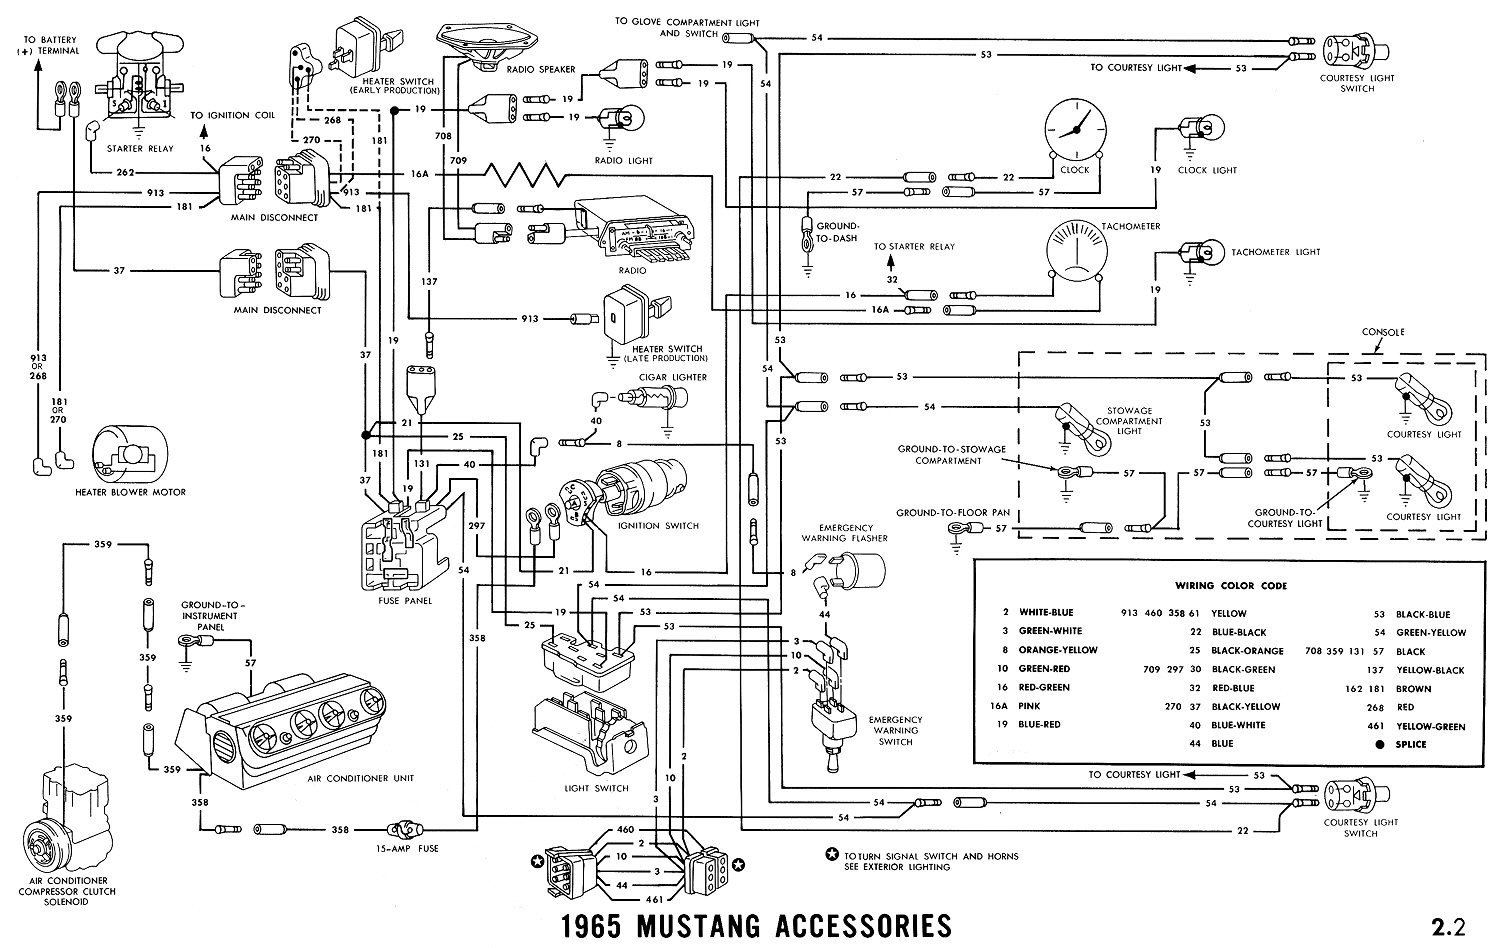 1965i 1965 mustang wiring diagrams average joe restoration 1965 ford mustang wiring diagrams at arjmand.co